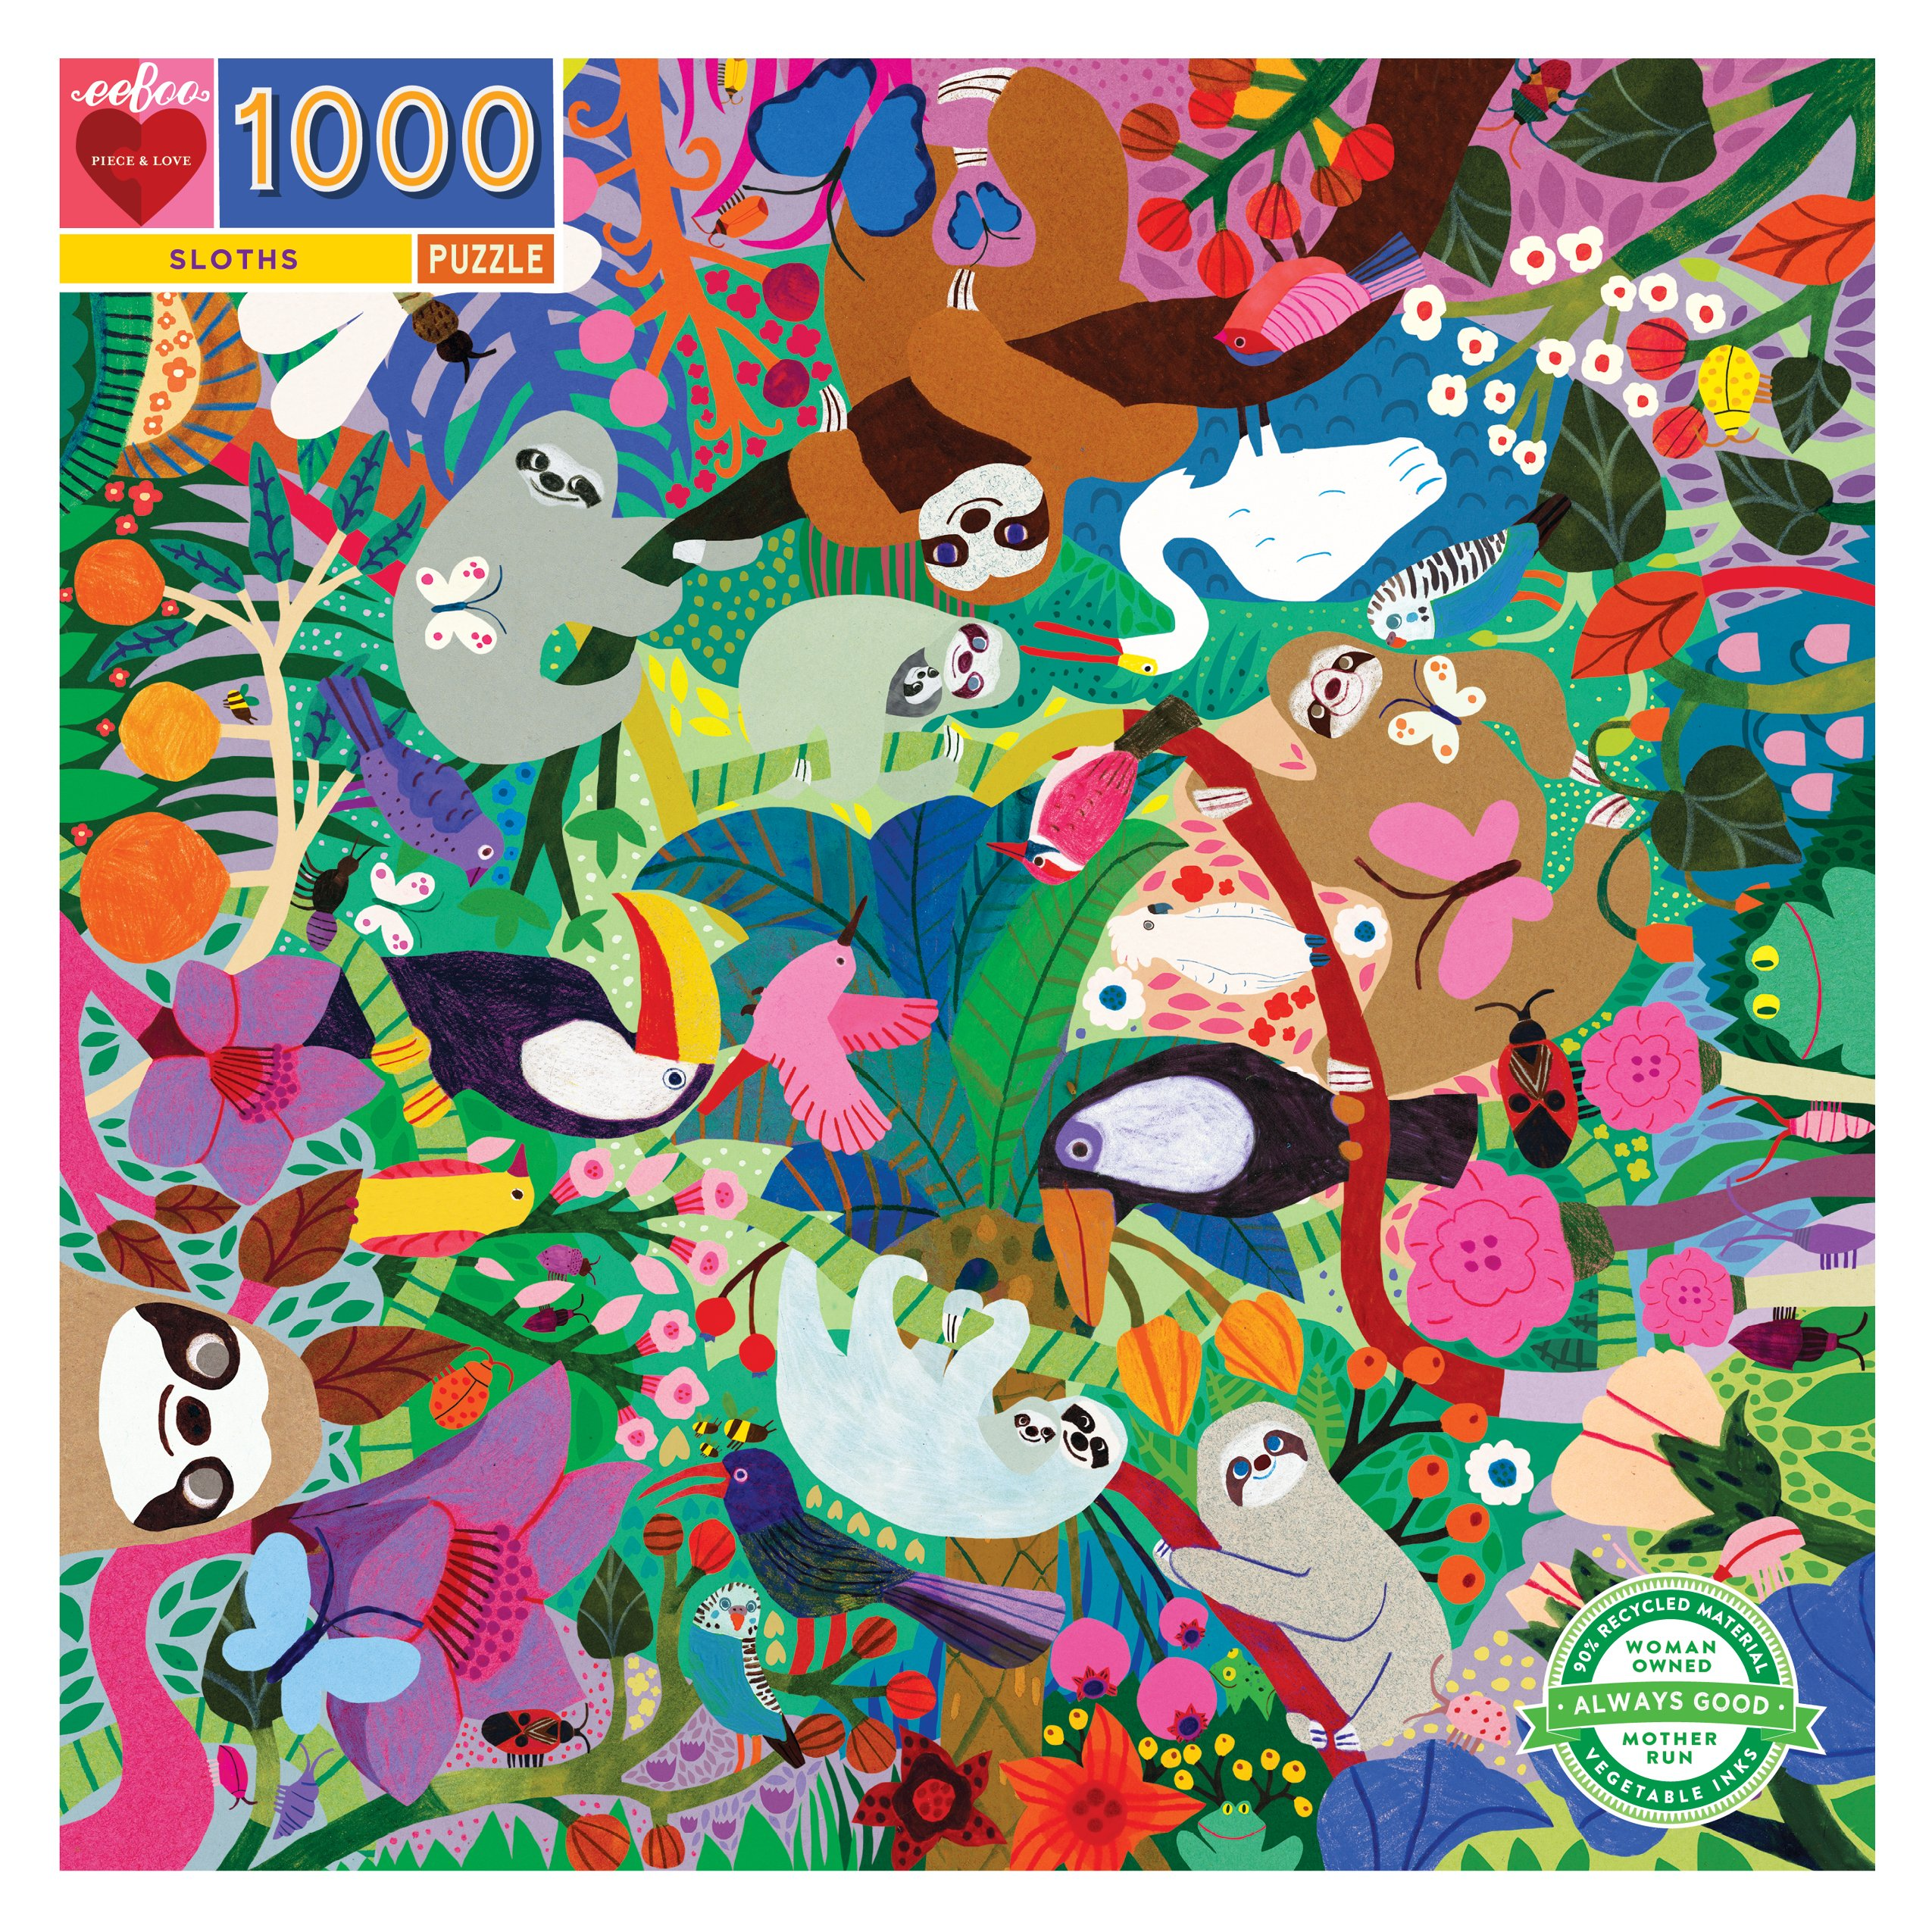 Sloths 1000 Piece Jigsaw Puzzle by eeboo